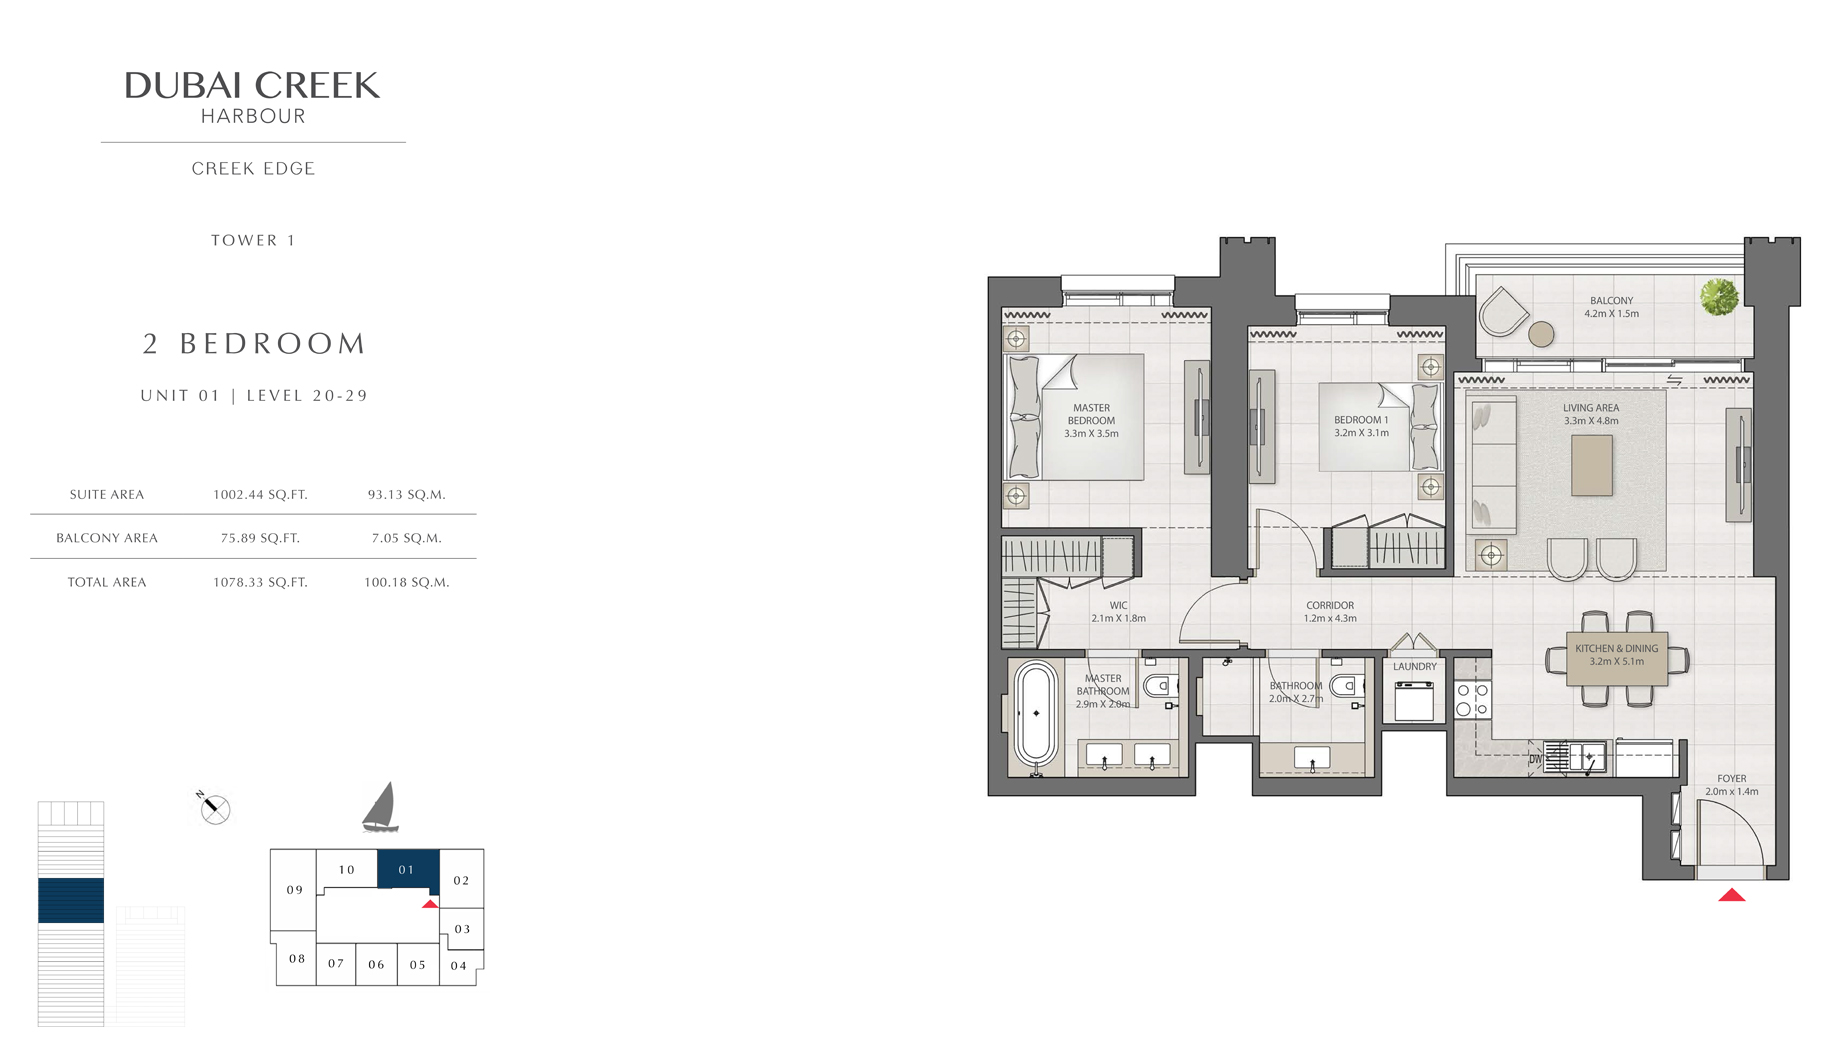 2 Bedroom Tower 1 Unit 01 Level 20-29  Size 1078 sq.ft